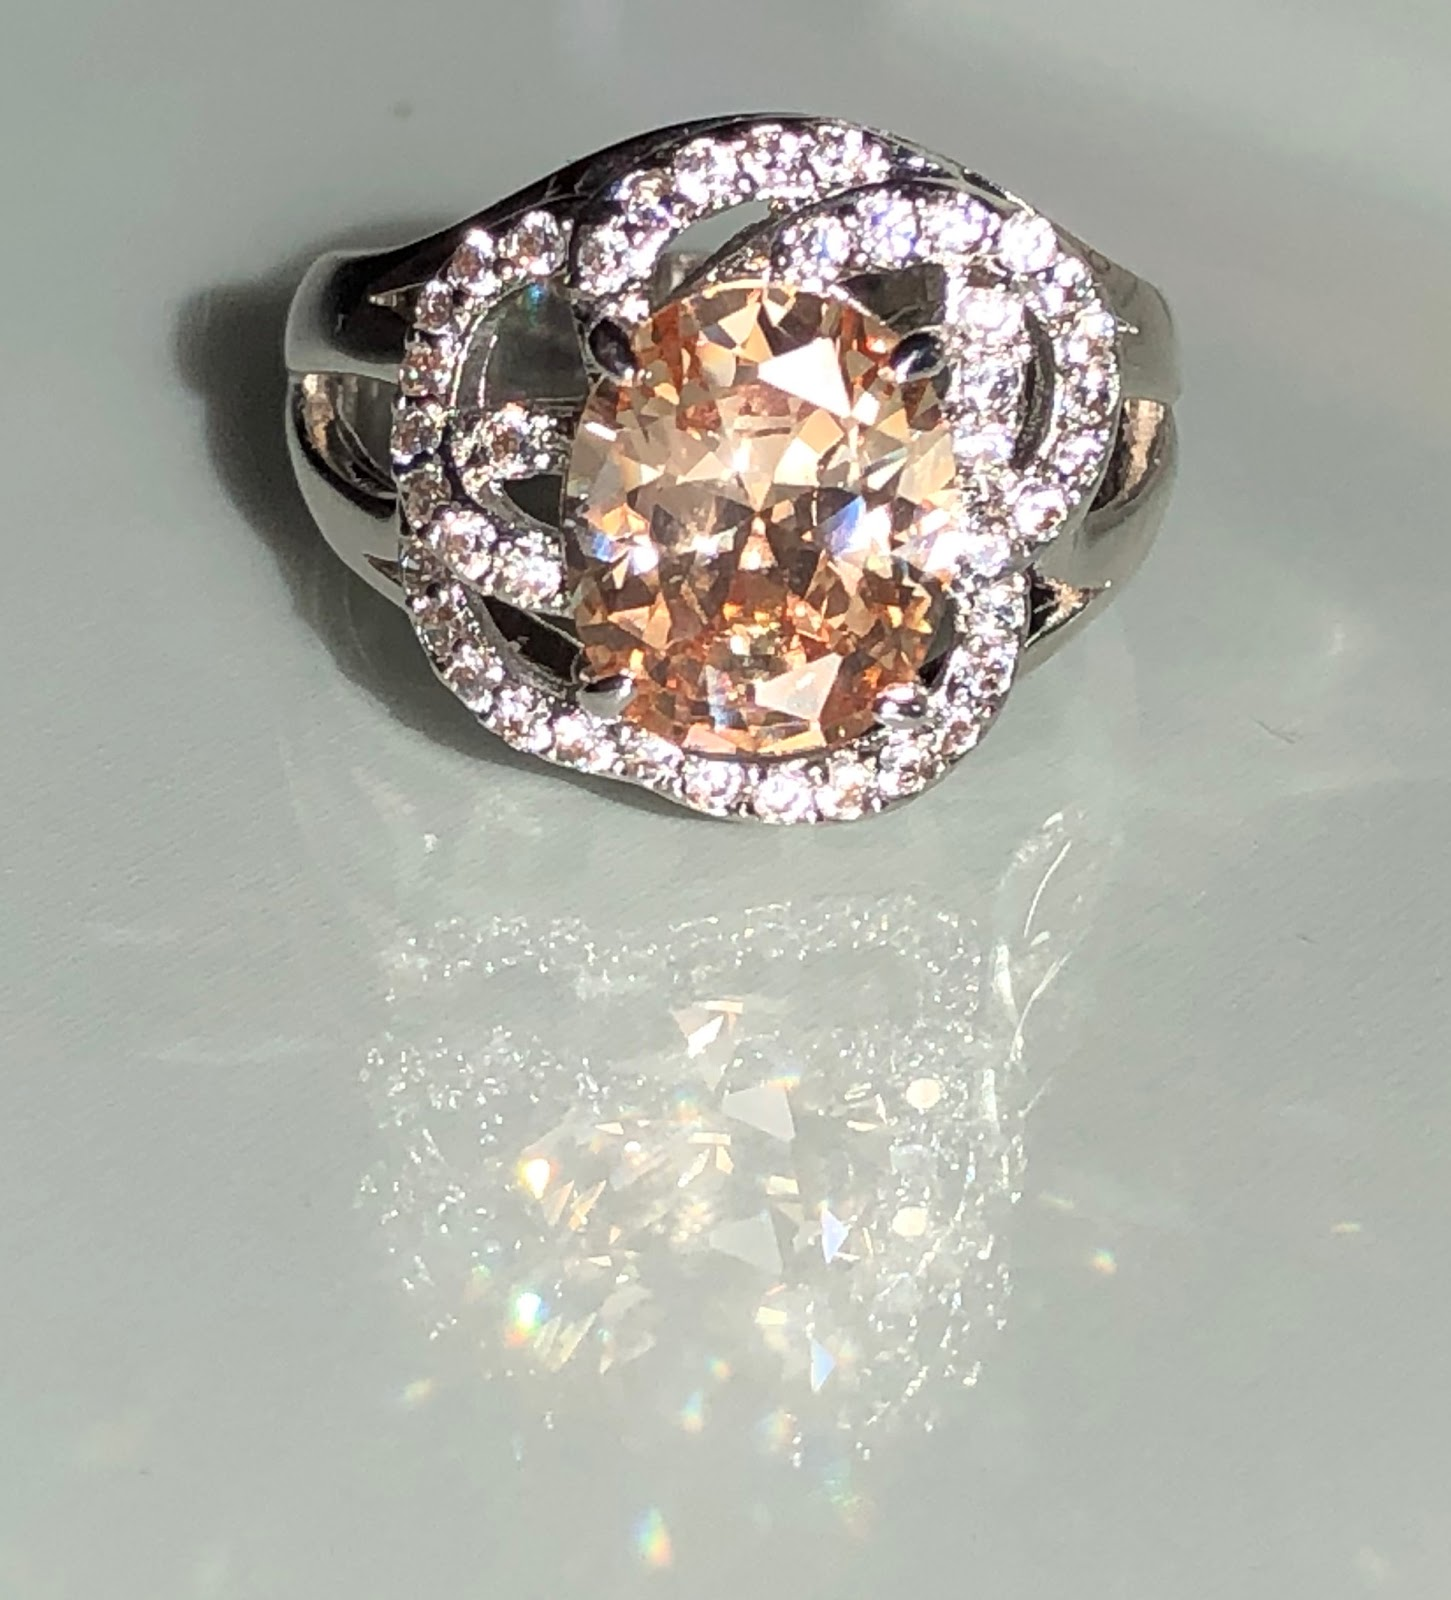 for rings winston who little trigger brides platinum harry unique love something modal a solo different ring